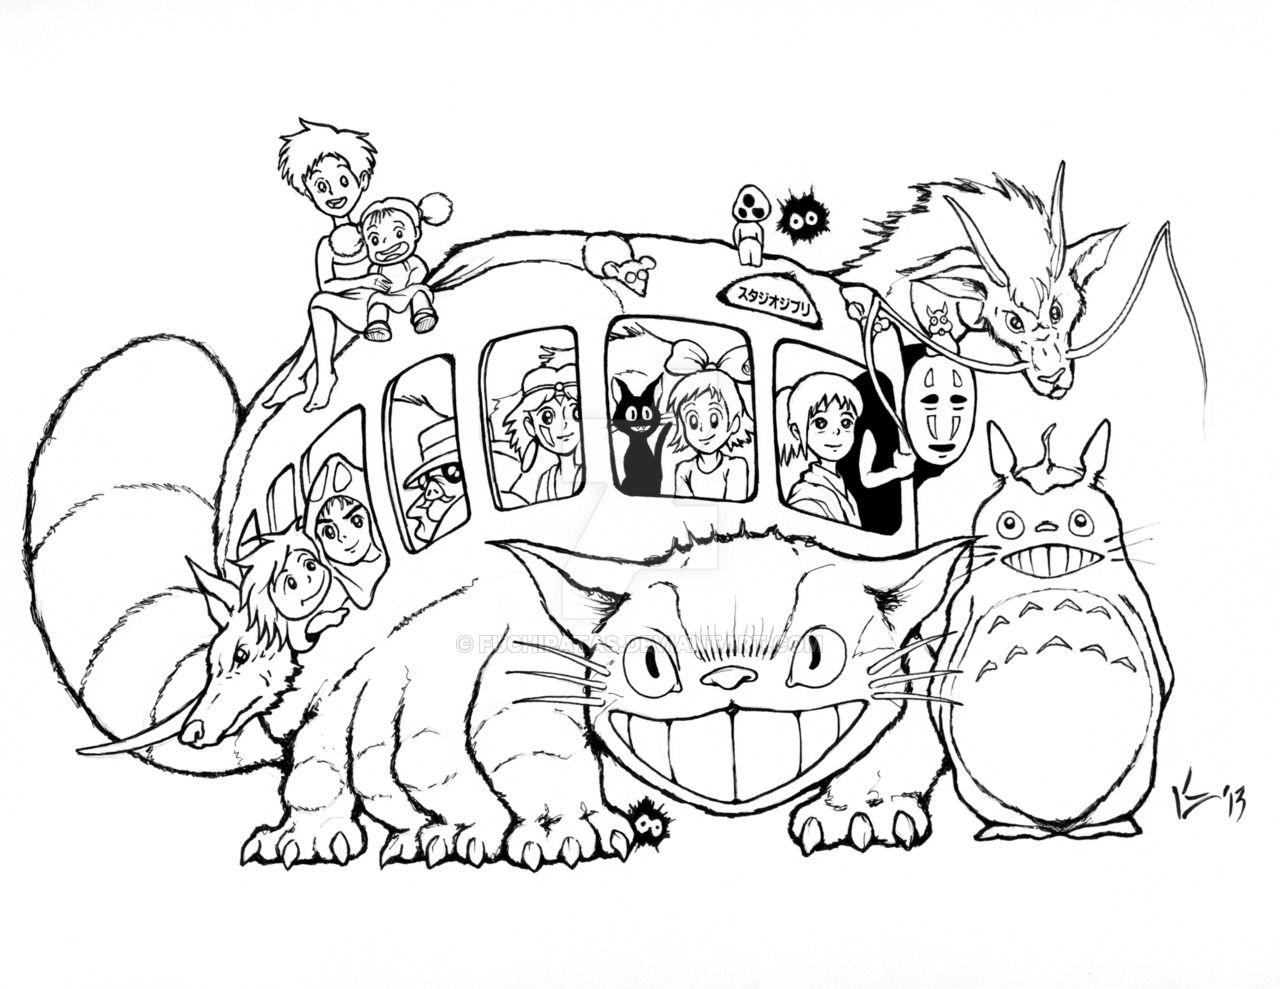 Manga studio ex 5 coloring pages ~ Studio Ghibli Catbus for AICN Contest - INKS by FUCHIPATAS ...